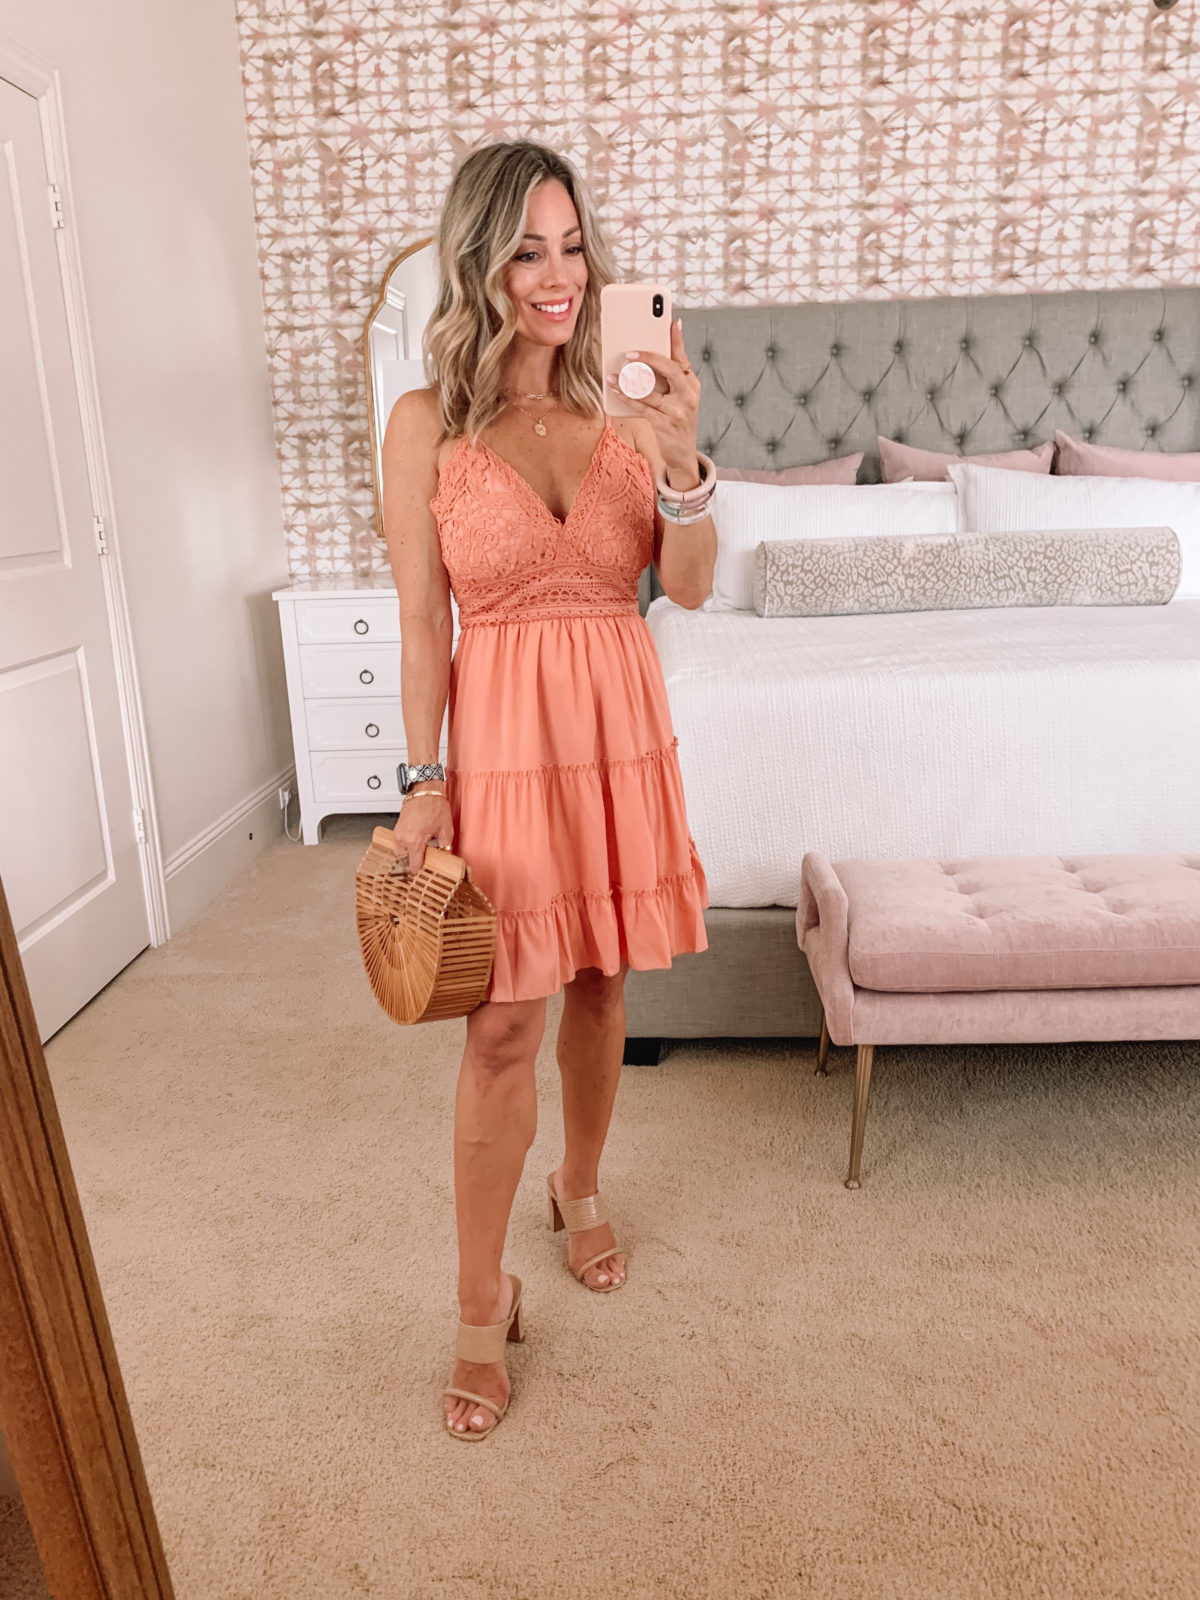 Amazon Fashion Faves, Pink Lace Overaly Dress and Sandals with Bamboo Bag